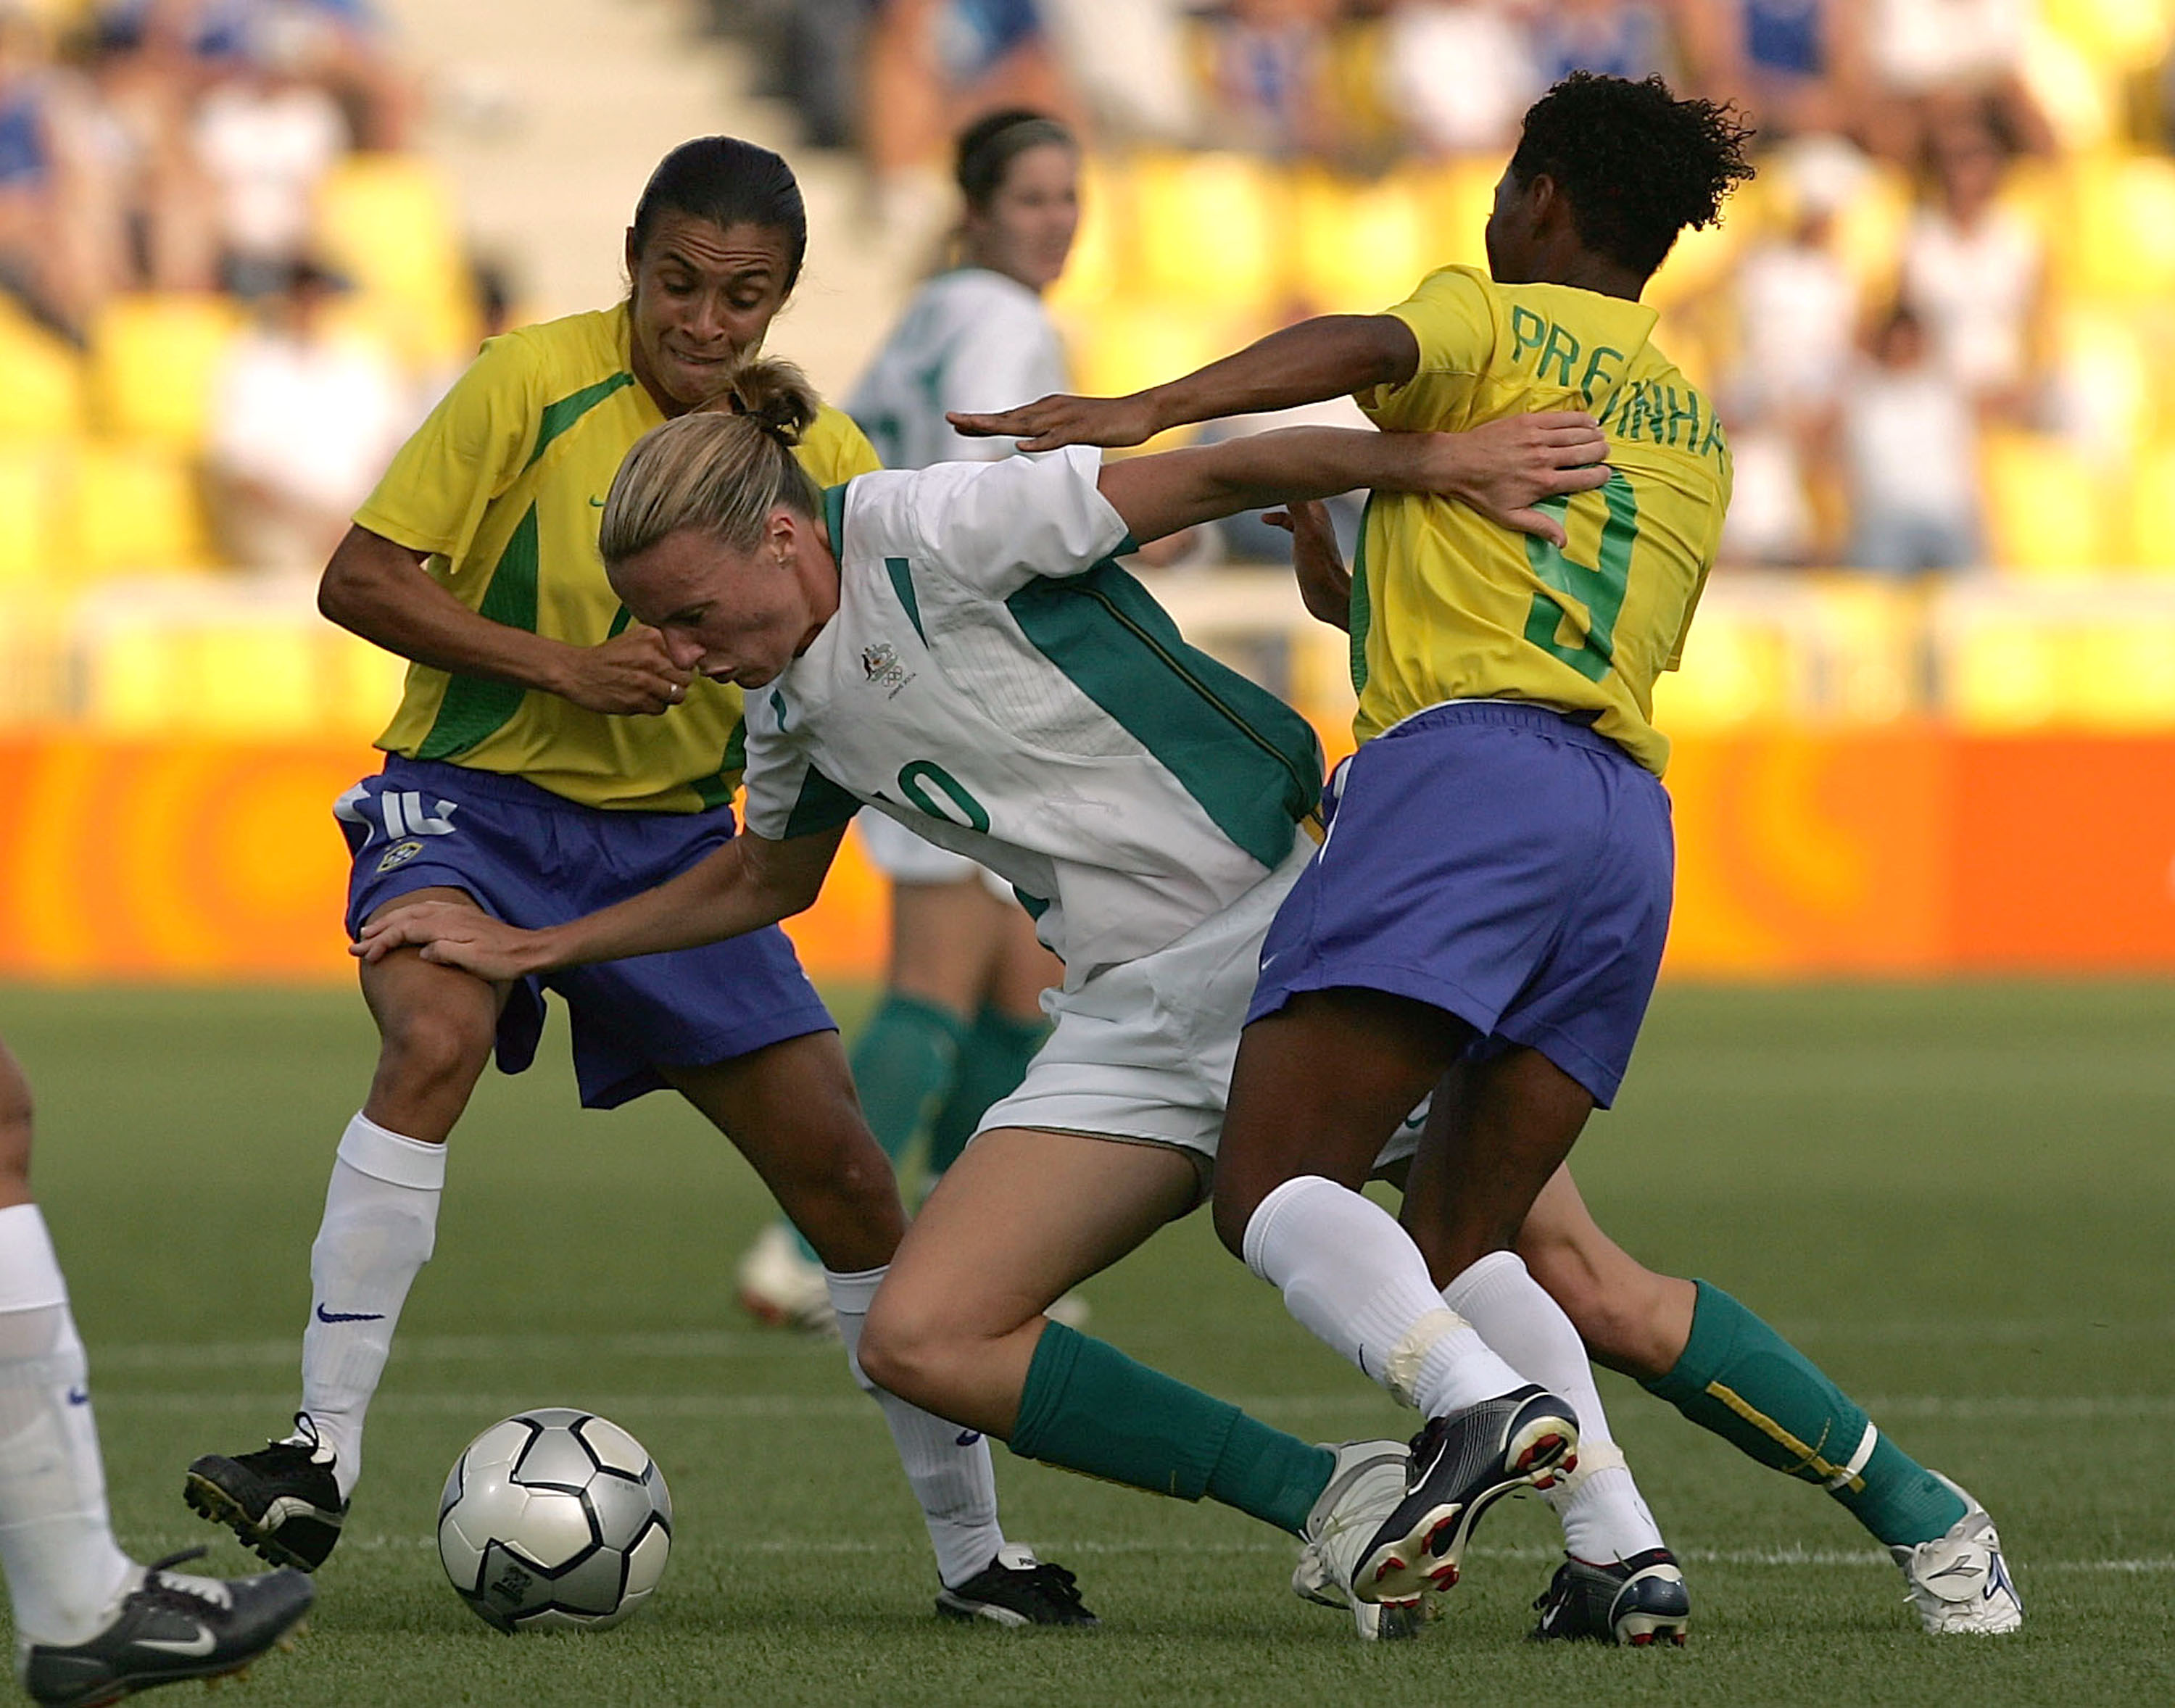 Joanne Peters taking on Brazil at Athens 2004 (Photo by Mark Dadswell/Getty Images)